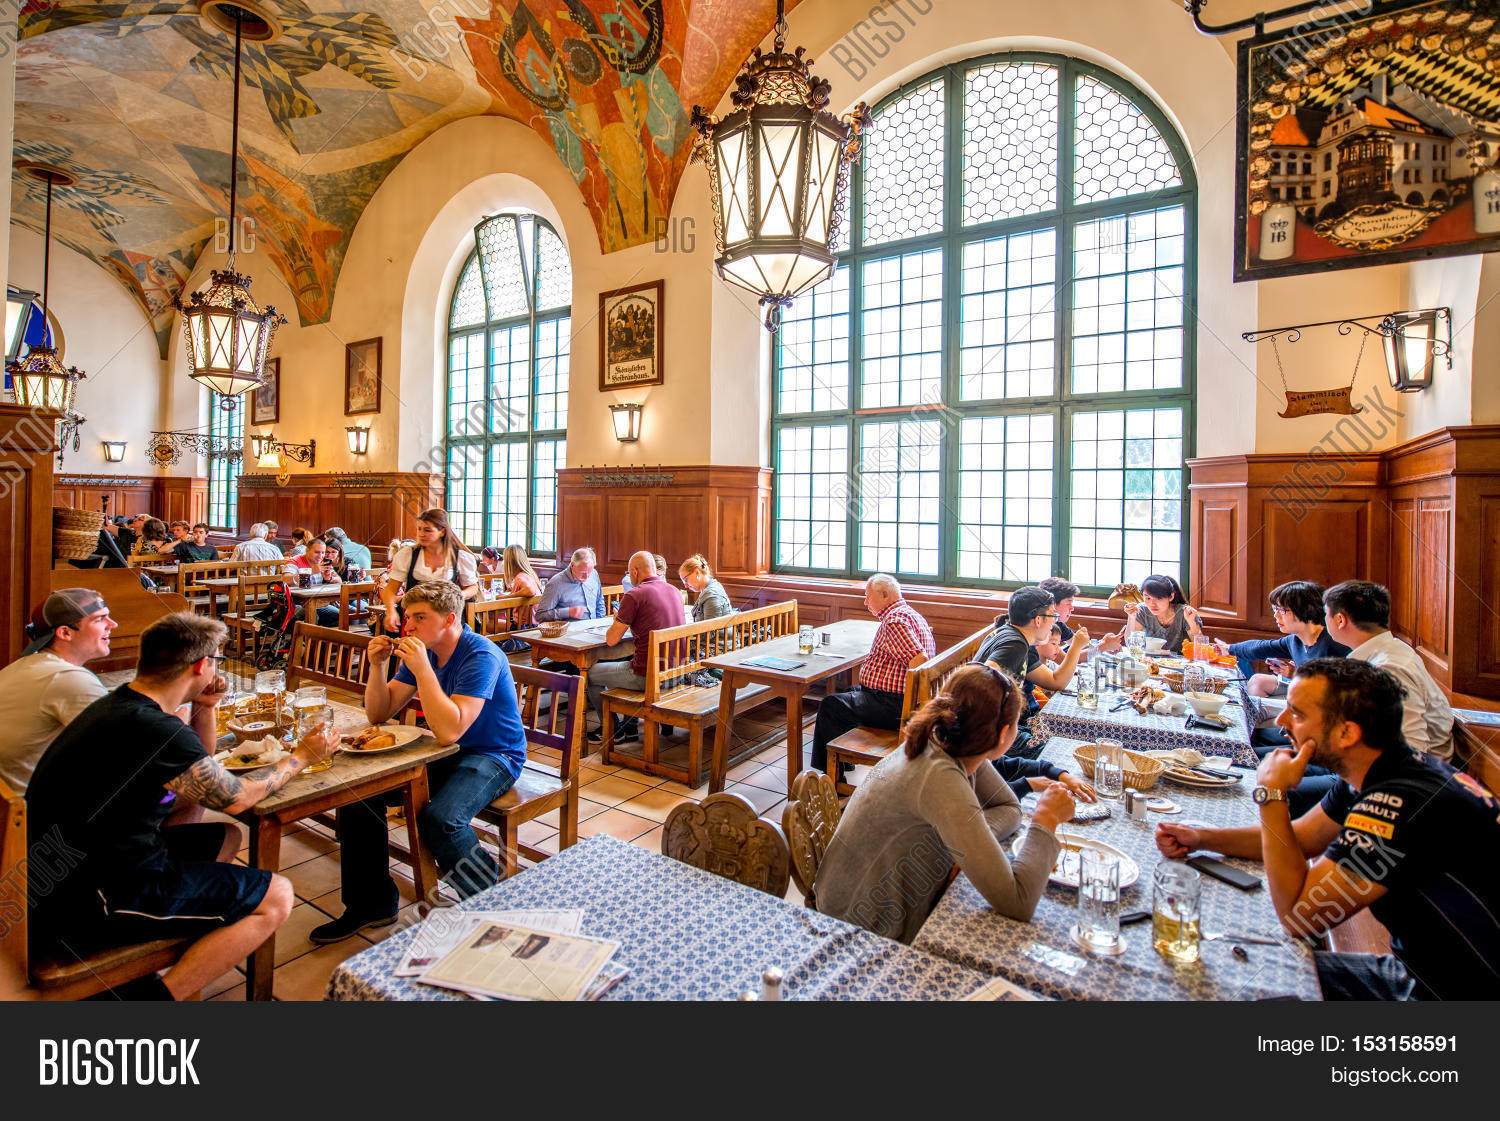 Crowded restaurant table - Munich Germany July 03 2016 Crowded Interior Of Famous Hofbrauhaus Pub In